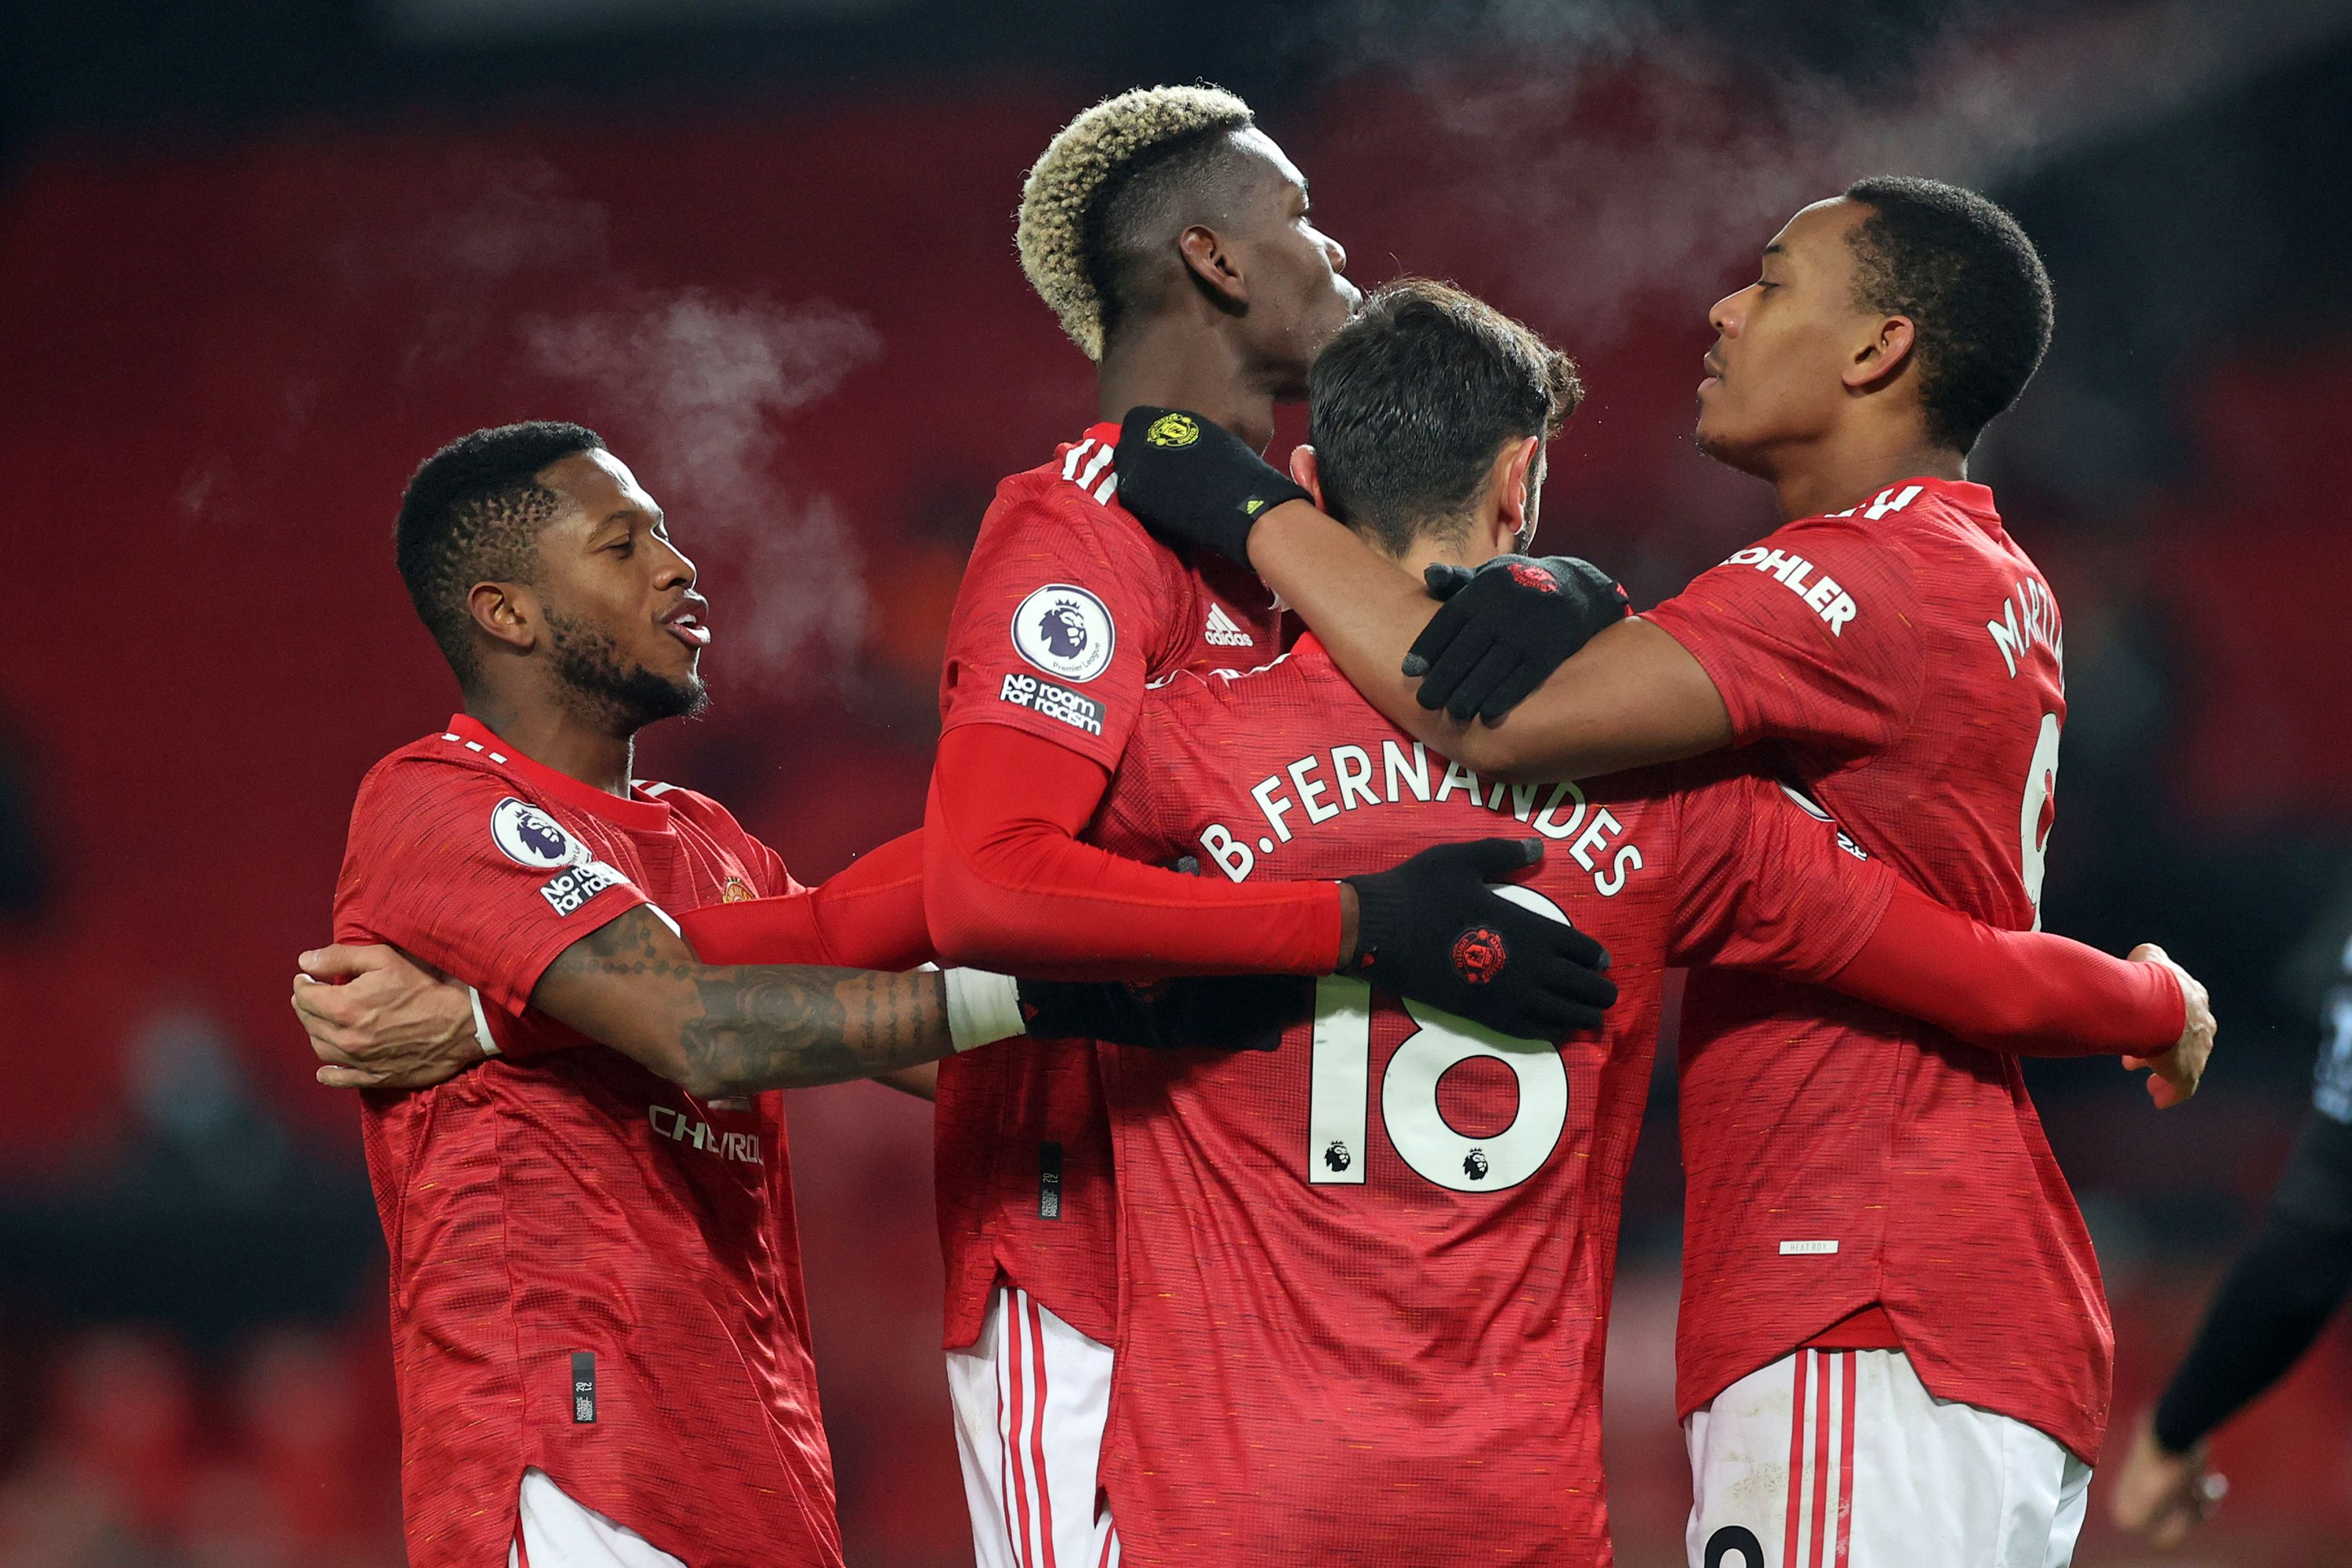 Manchester United draw level with Liverpool as Fernandes penalty sees off Villa